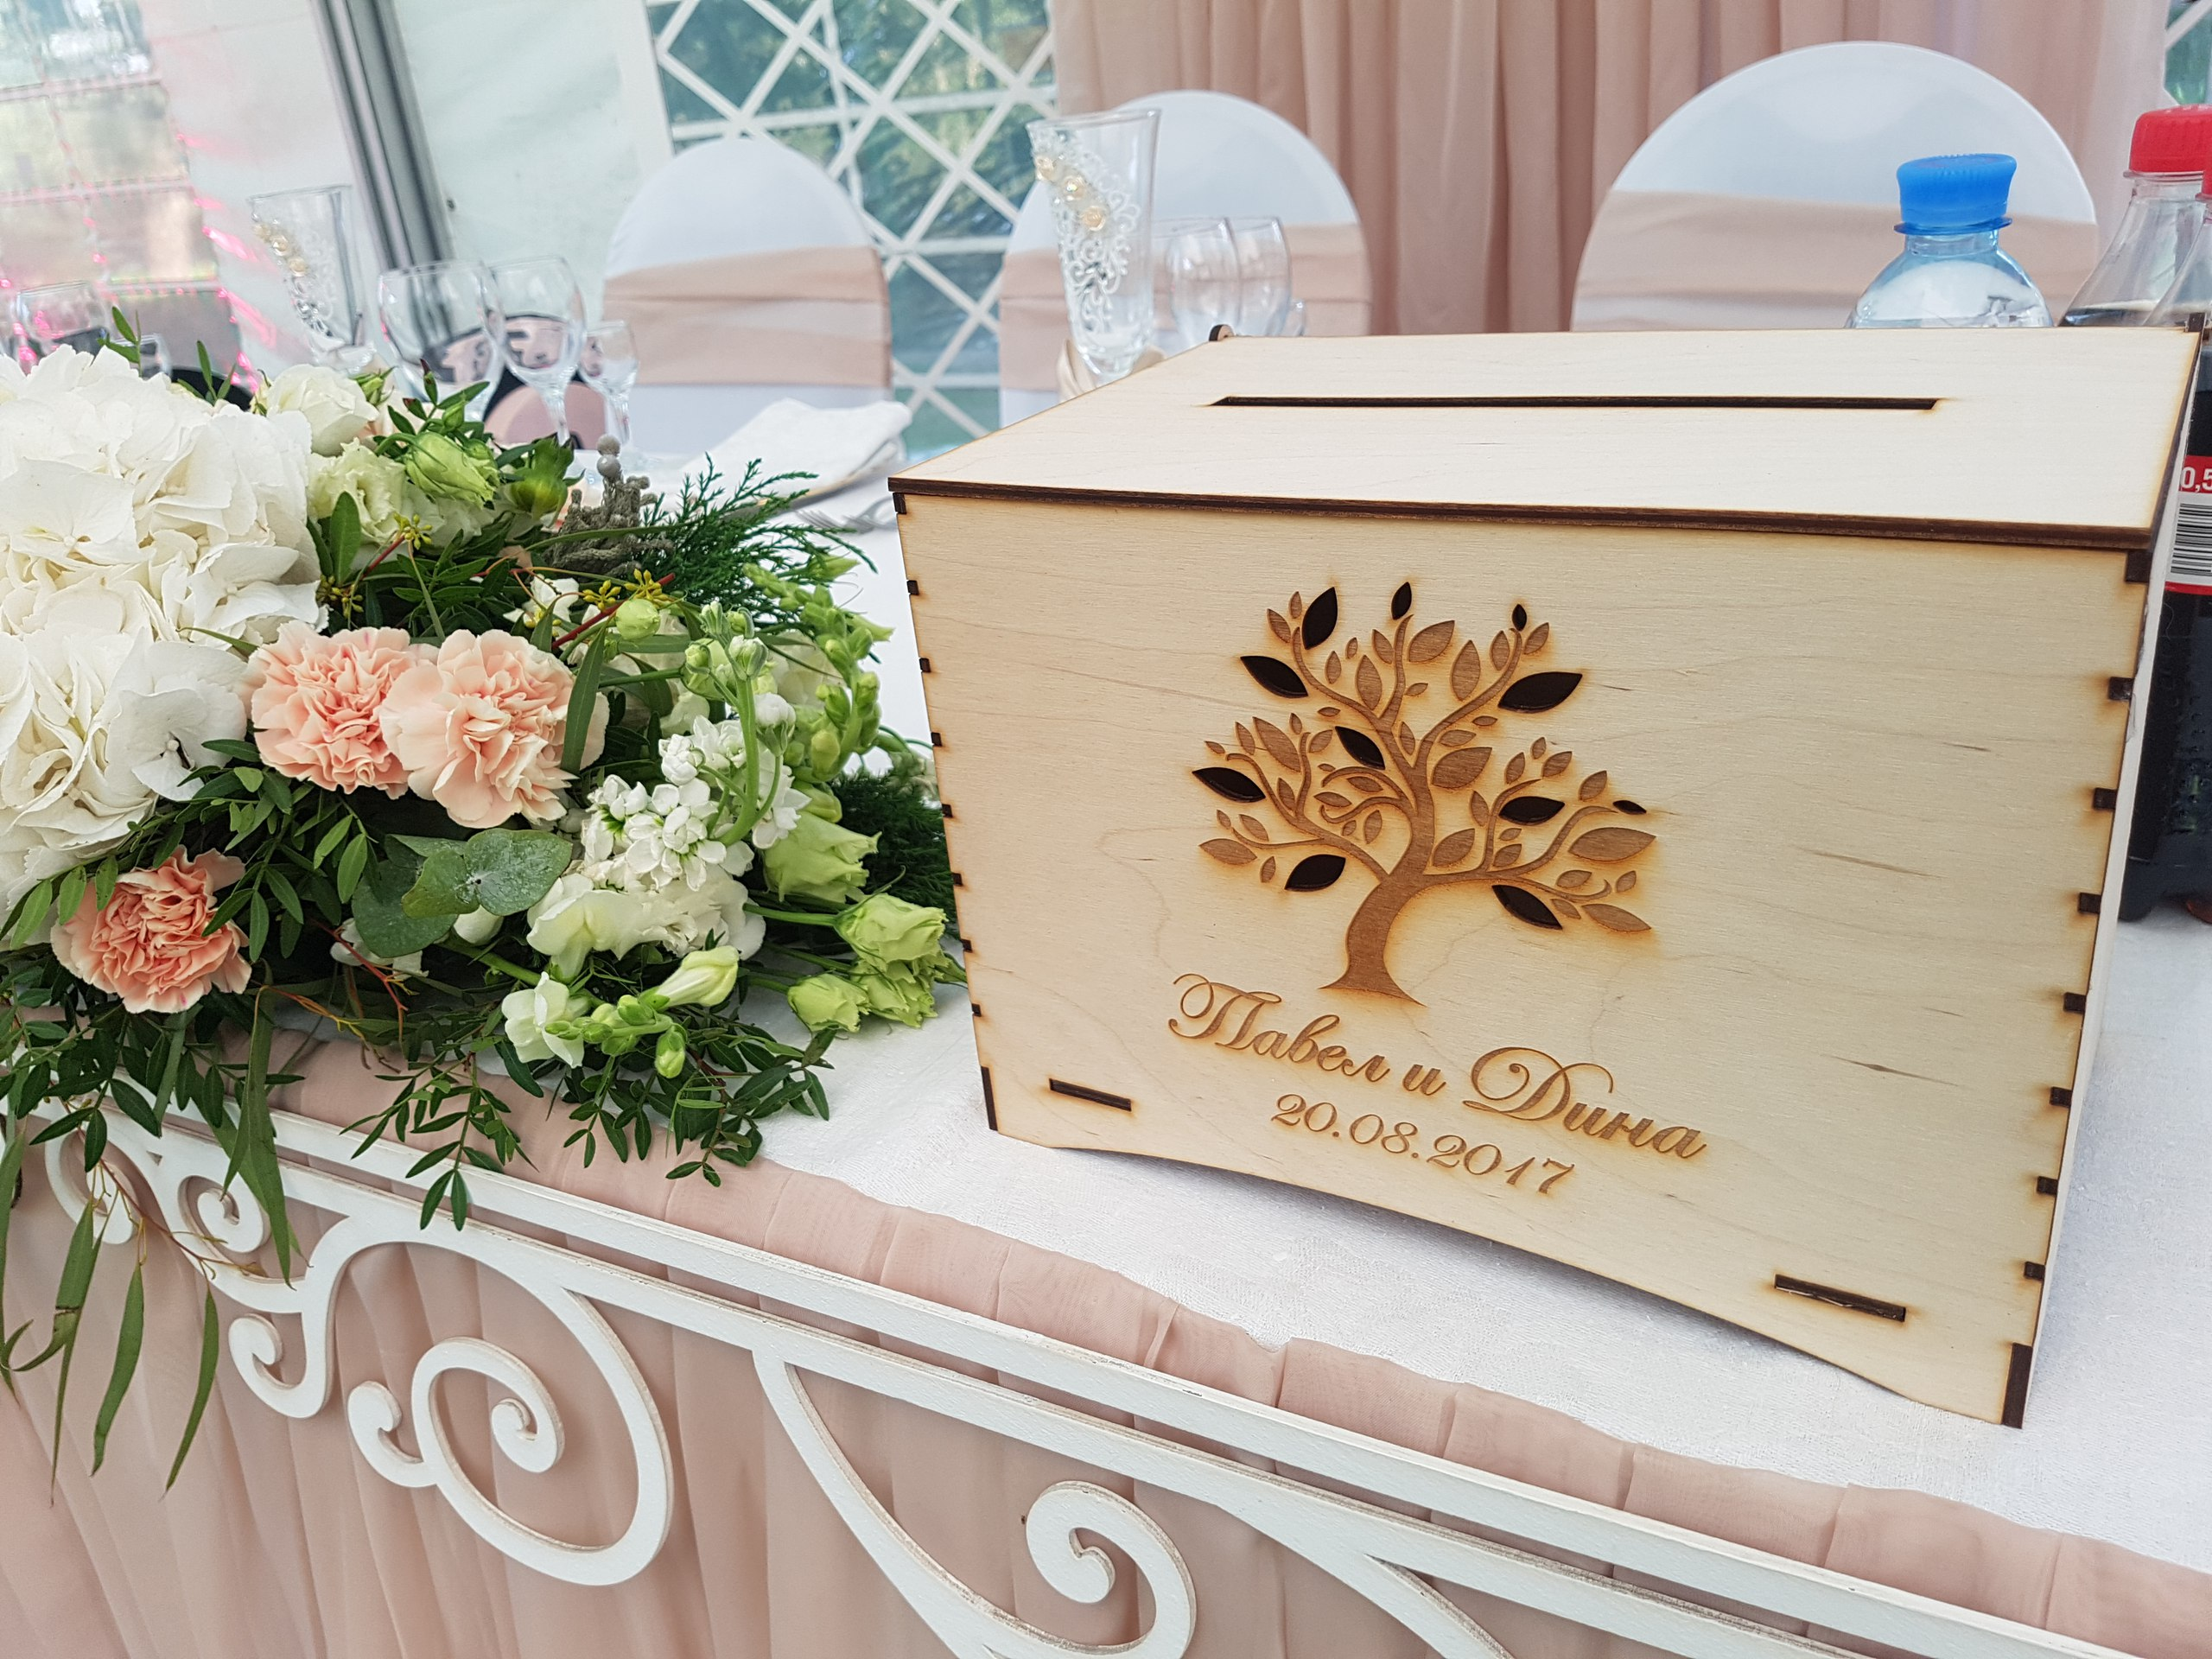 Wooden Wedding Boxes With Slot On Top Money Card Storage For Laser Cut Free CDR Vectors Art